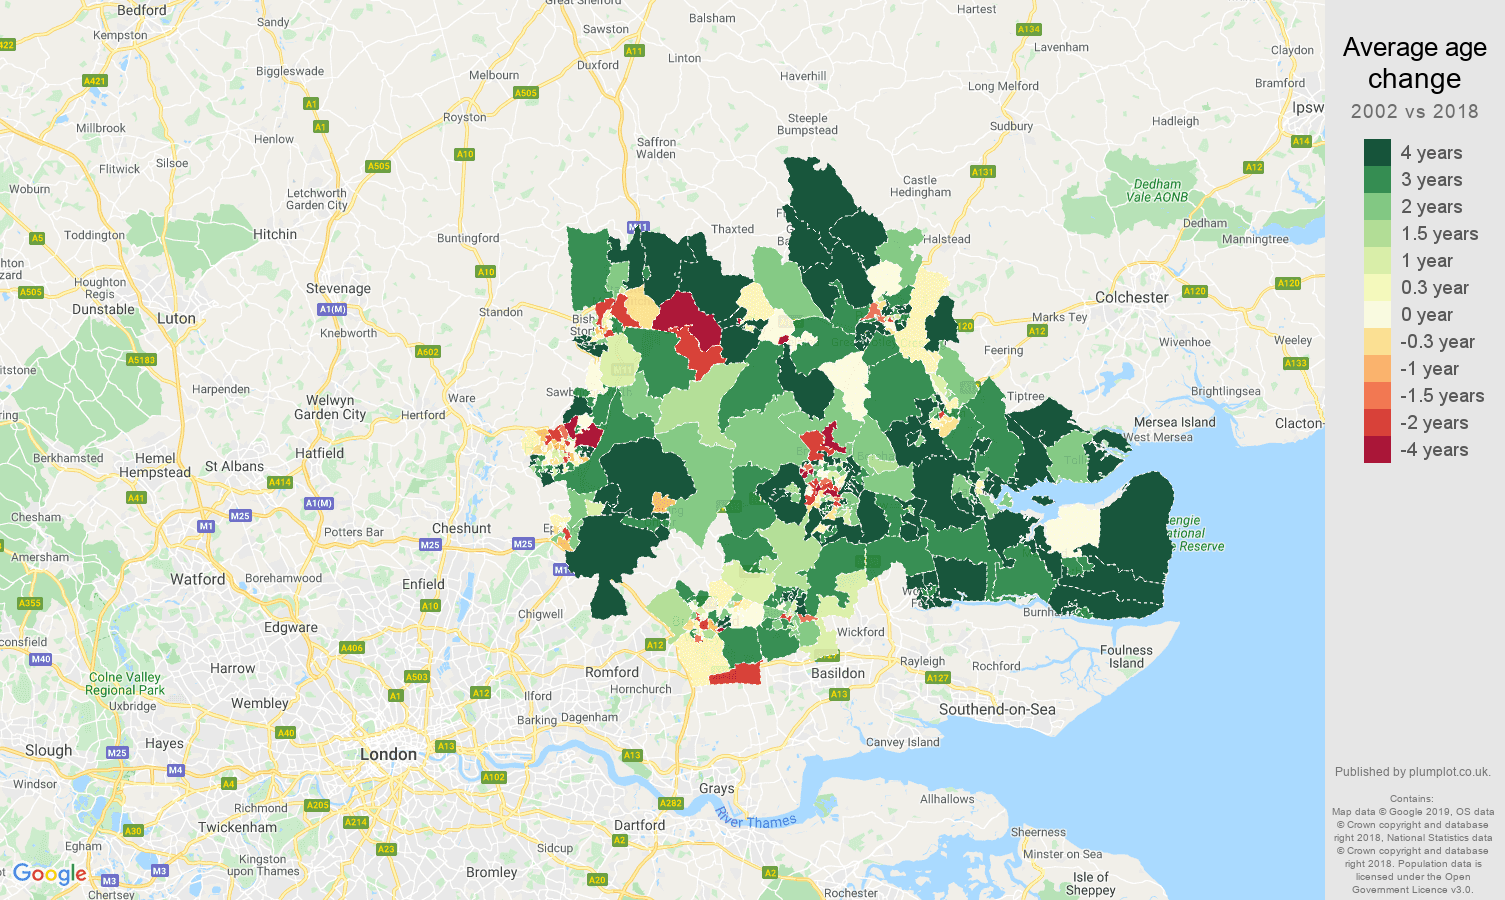 Chelmsford average age change map